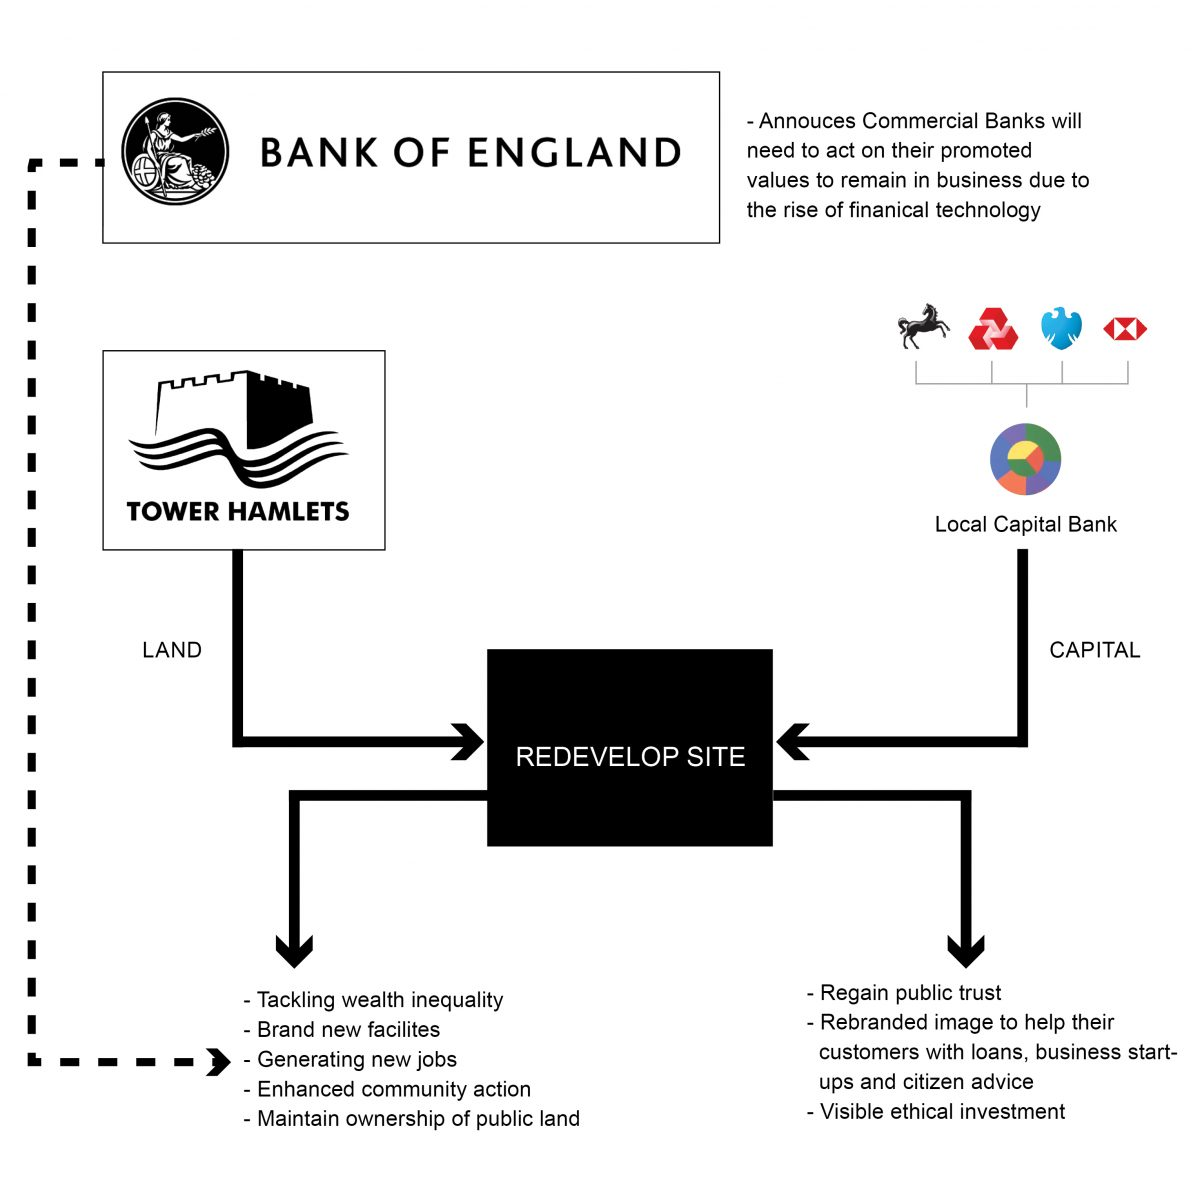 The diagram attempts to answer how commercial banks can organise themselves to regain the public trust that has weakened over the years.